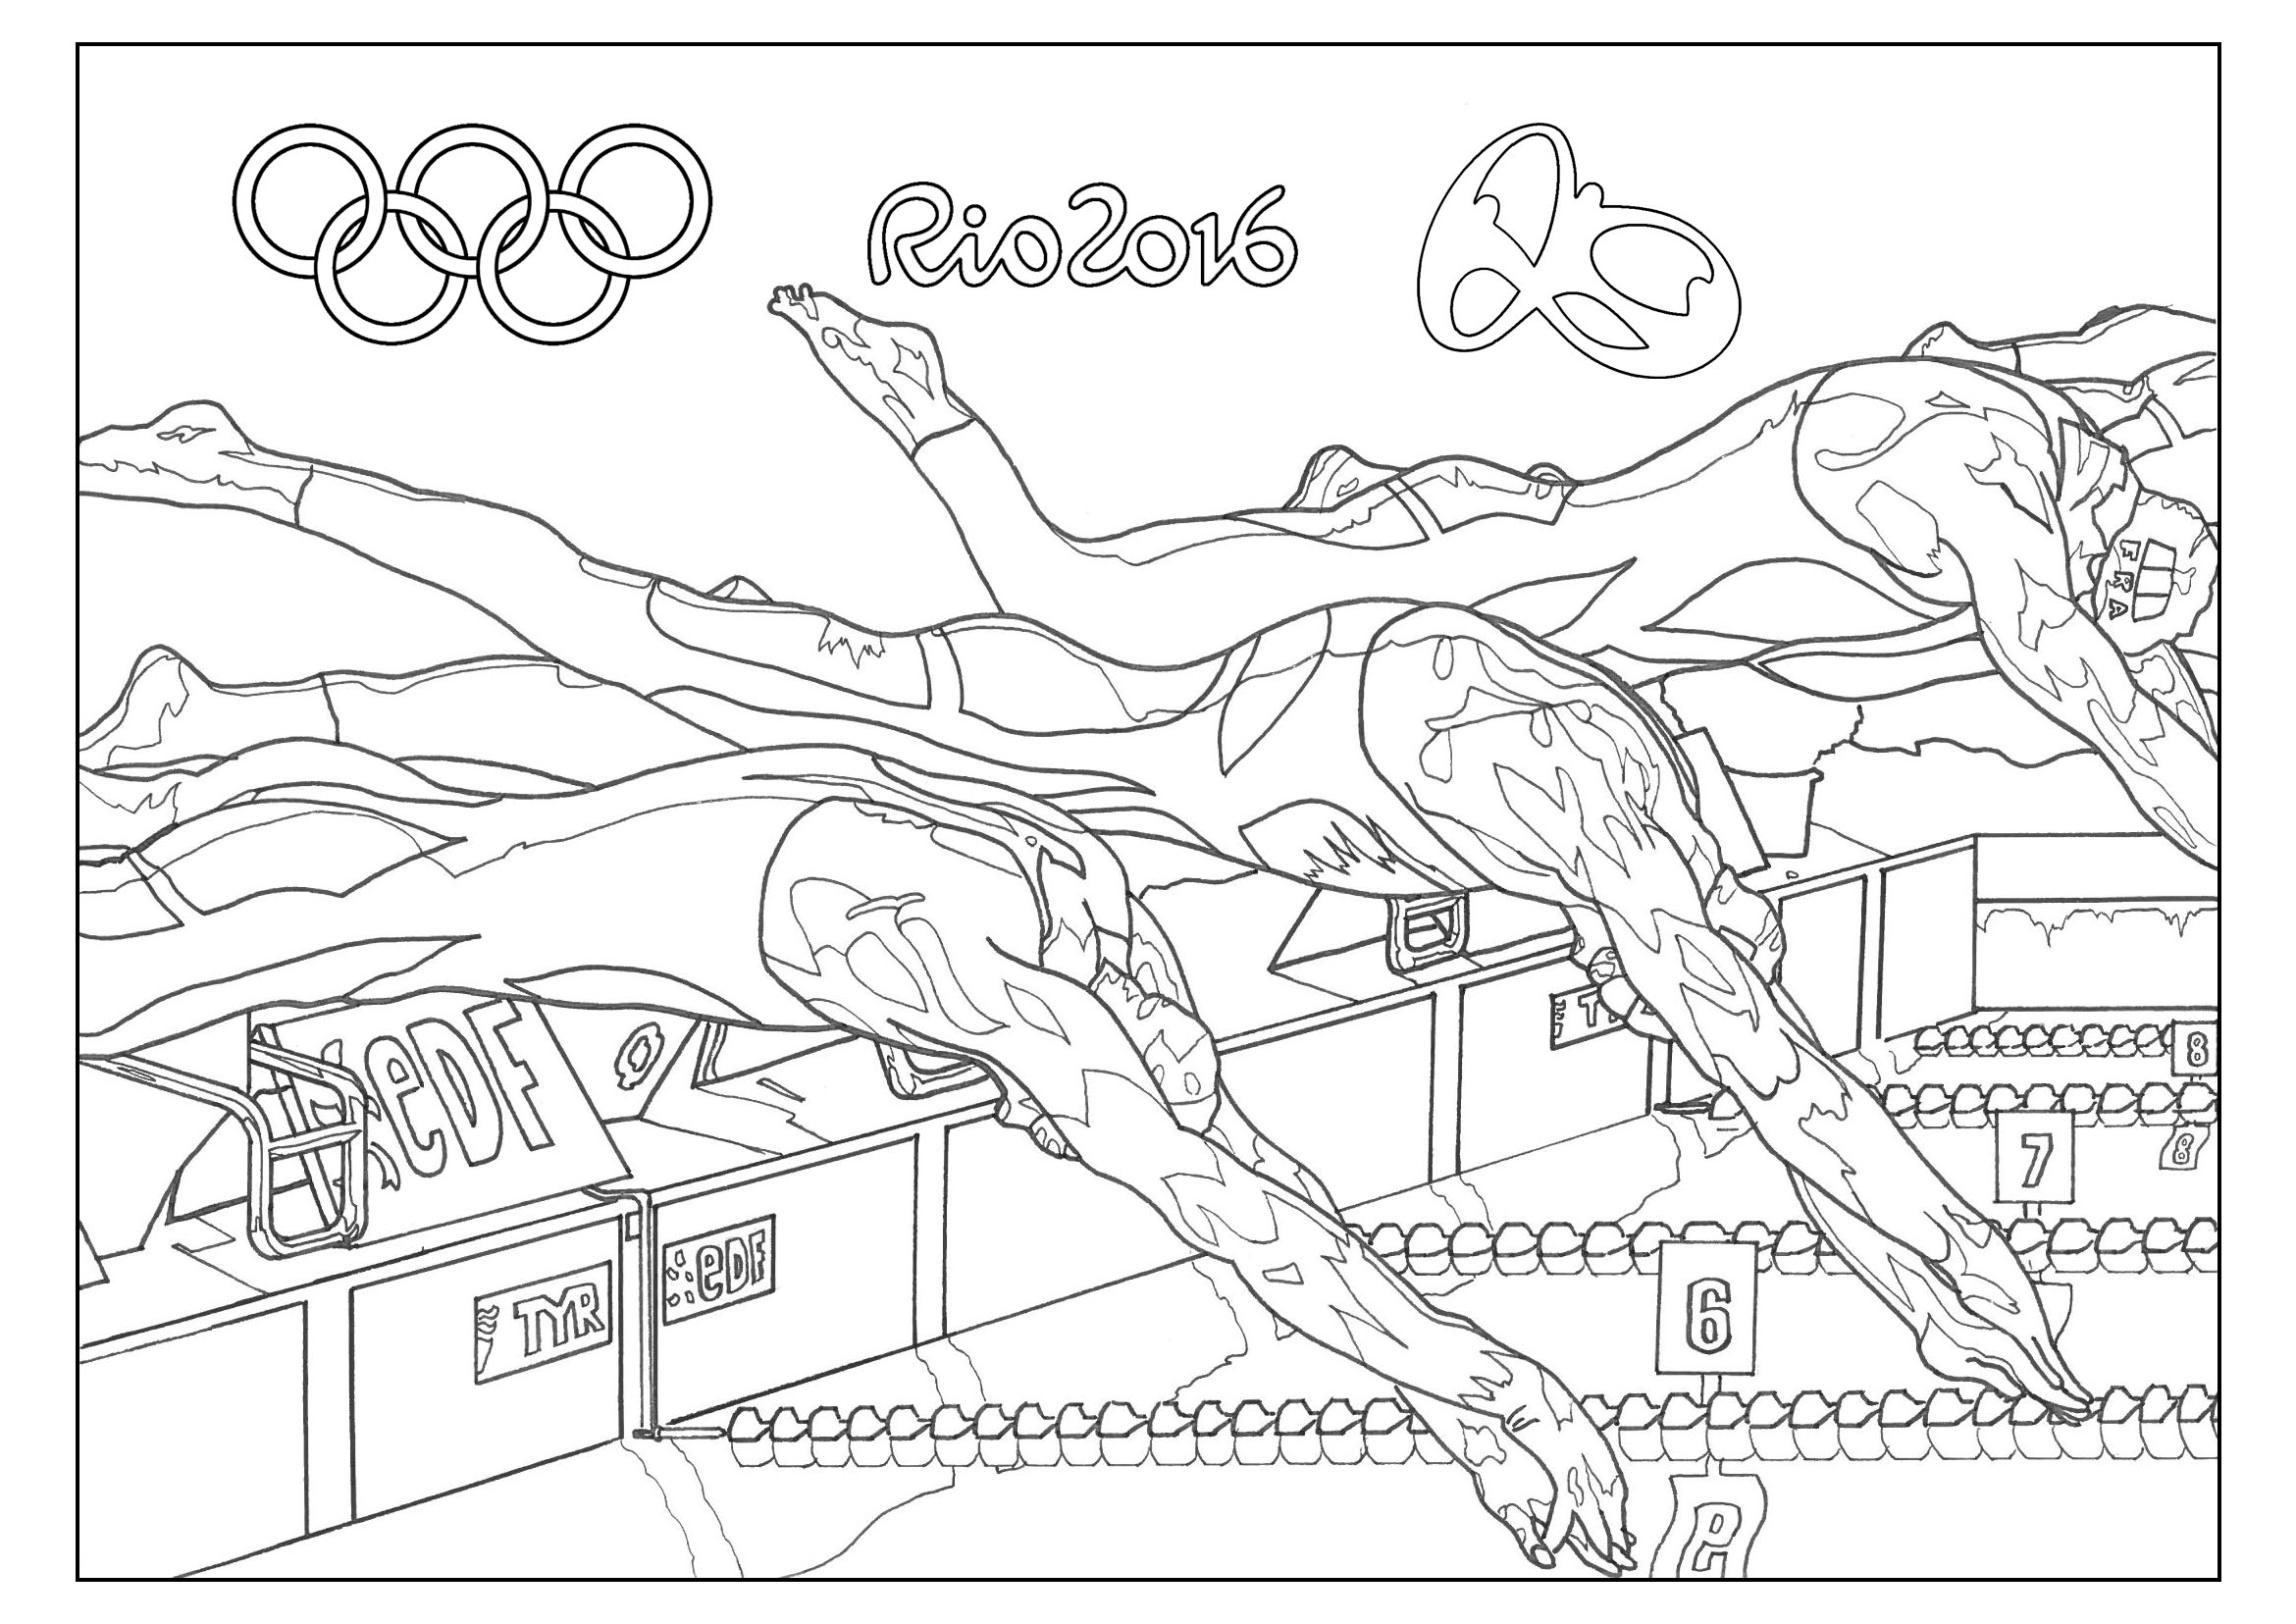 Swim Team Coloring Pages 6107 821—1061 – Fun Time to Print Of Olympic Swimming Coloring Pages Best Coloring Pages Games Image Printable